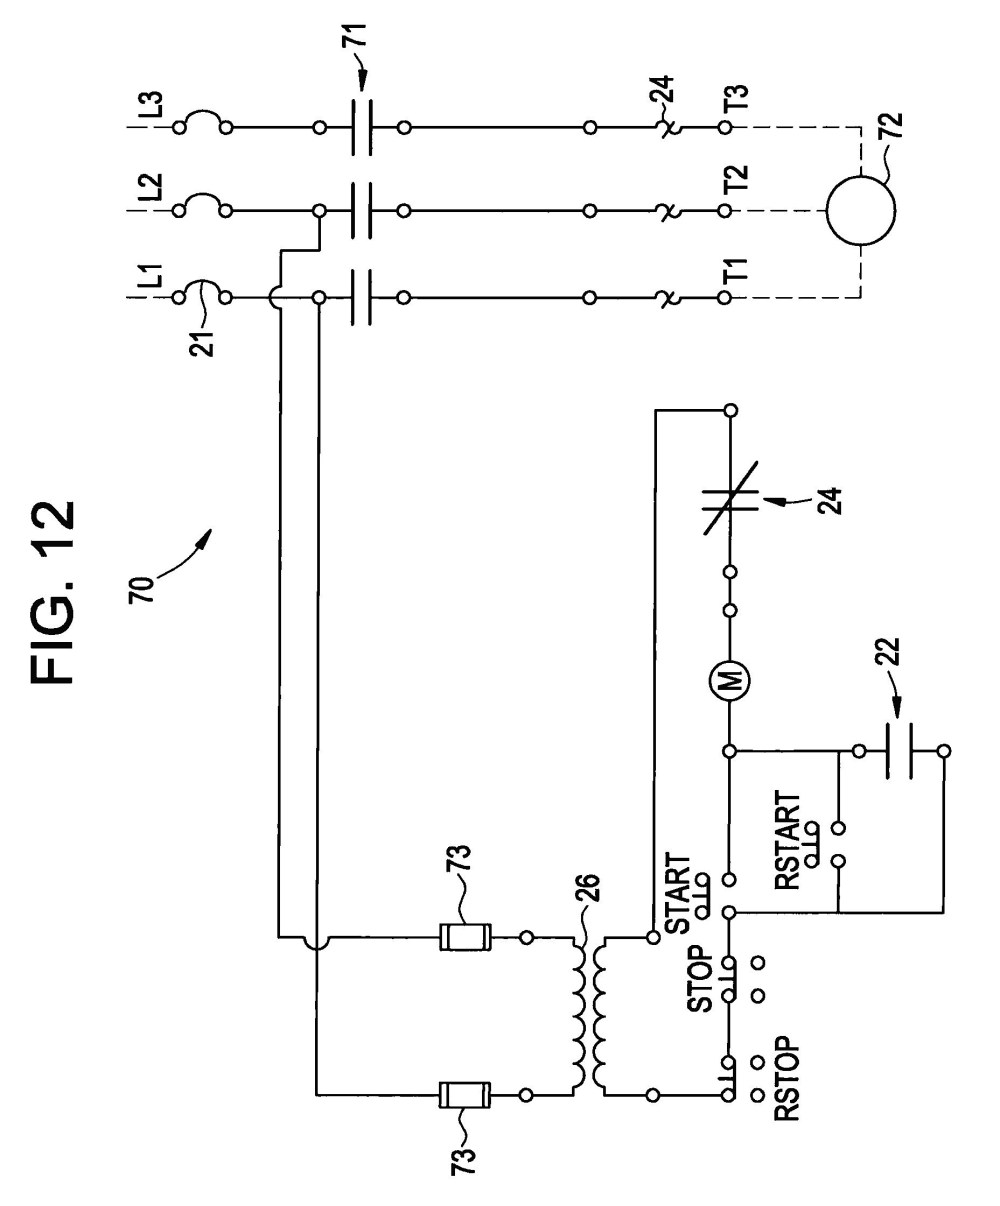 medium resolution of  3 phase contactor wiring diagram 3 phase contactor wiring diagram start stop